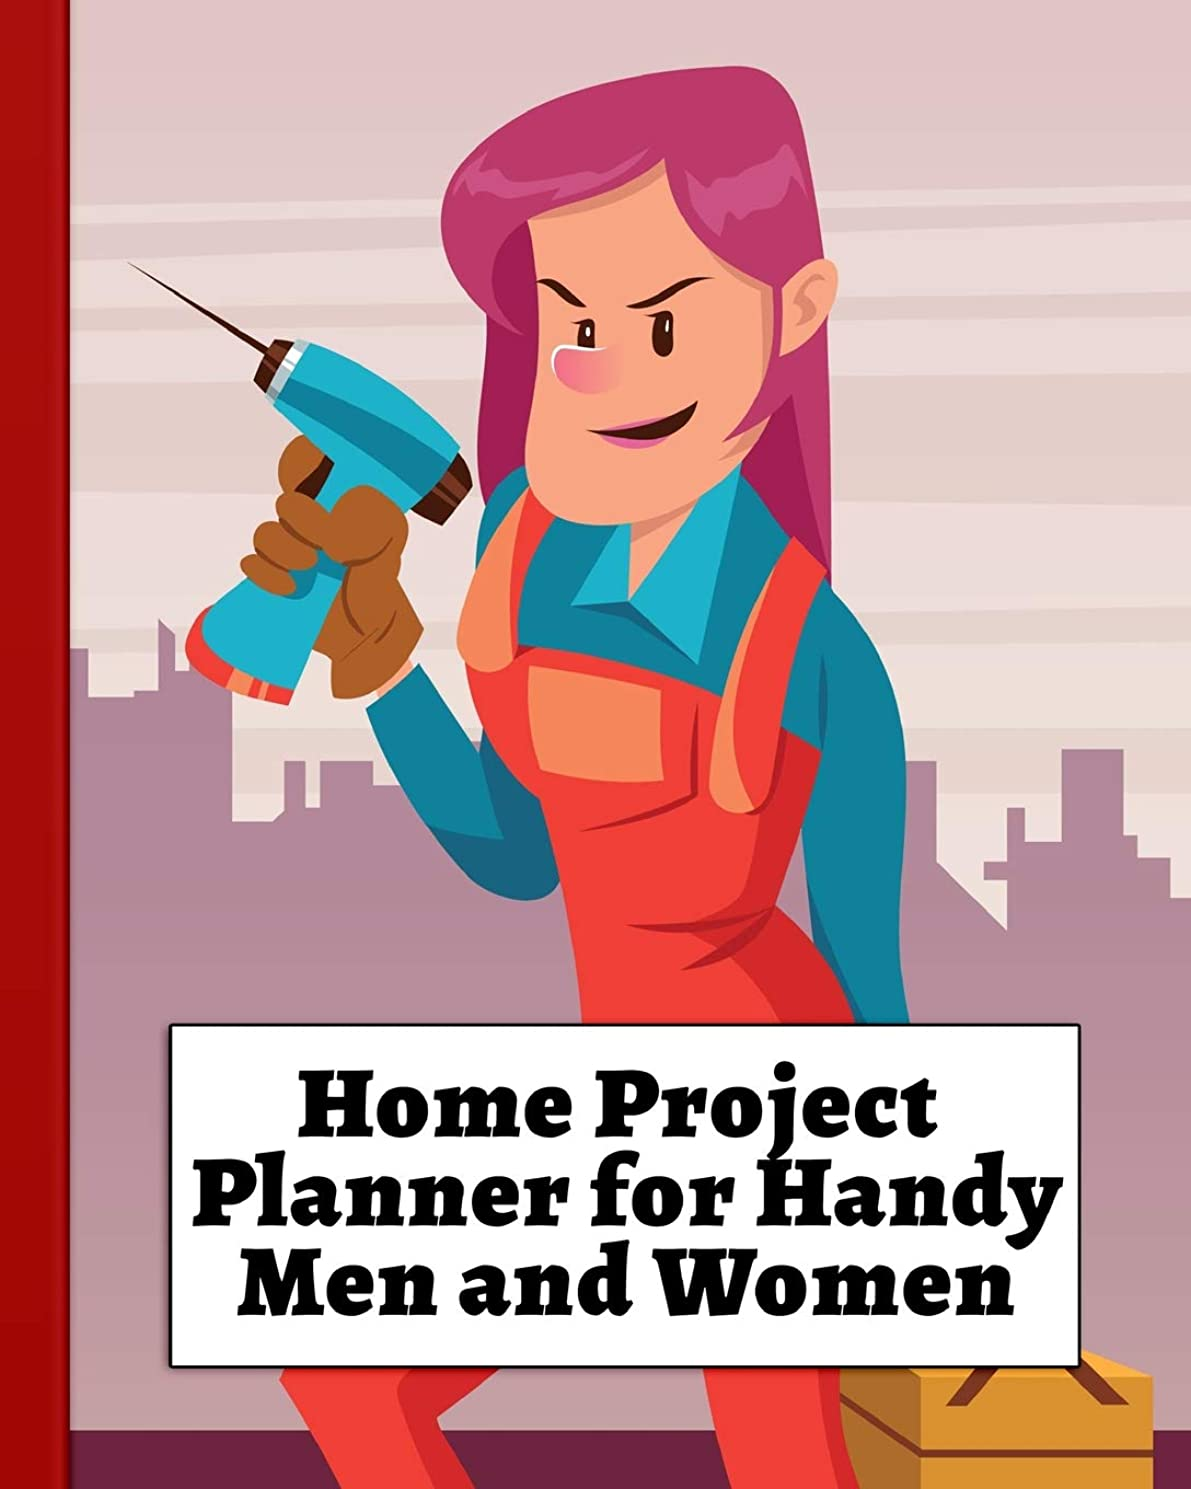 Home Project Planner for Handy Men and Women: Home Sweet Home List of Projects to Do